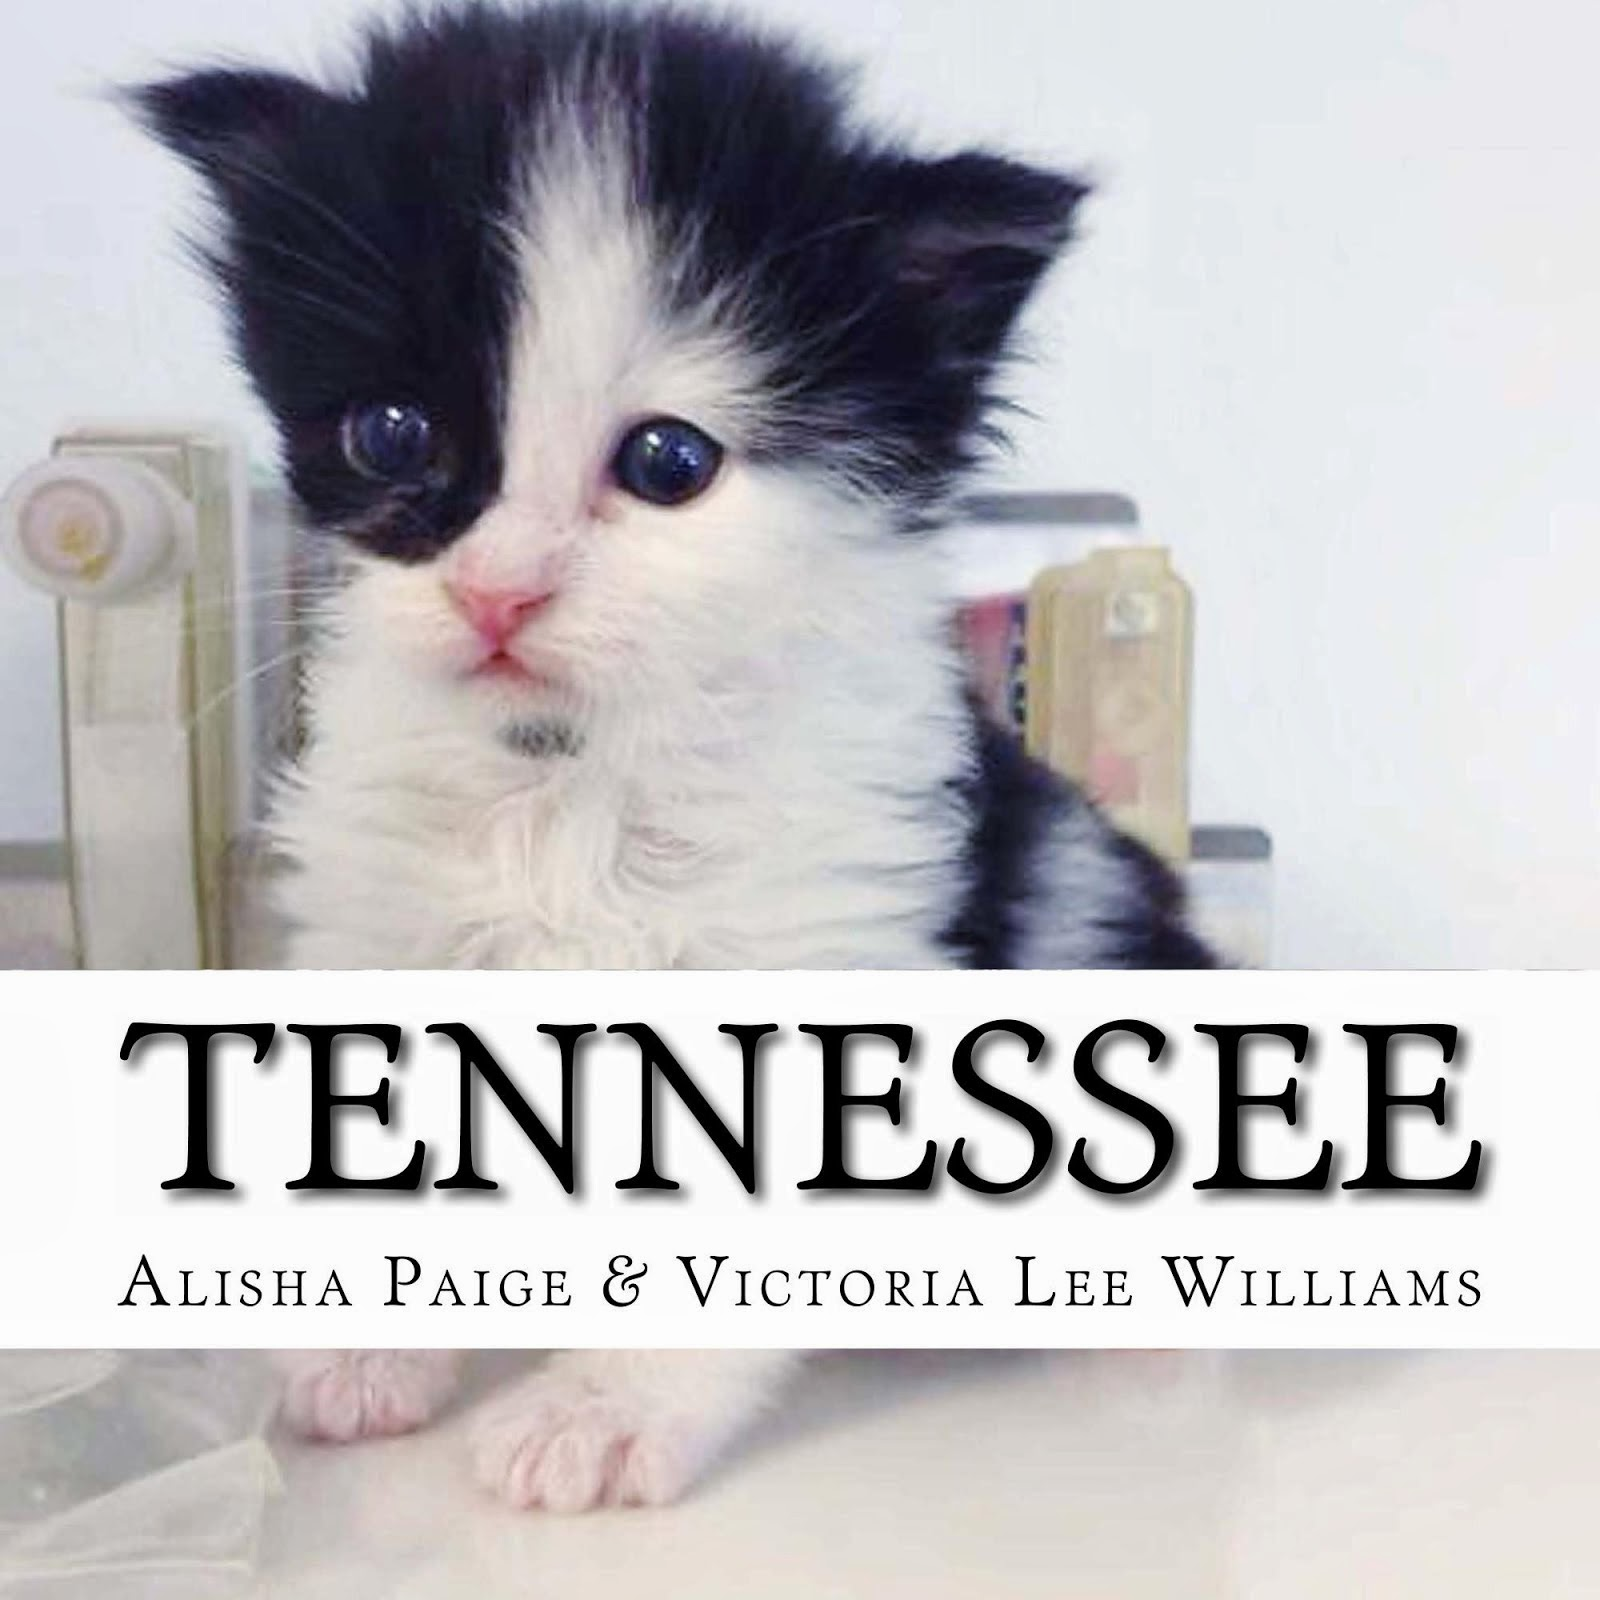 Tennessee, the Story of the World's Best Therapy Cat